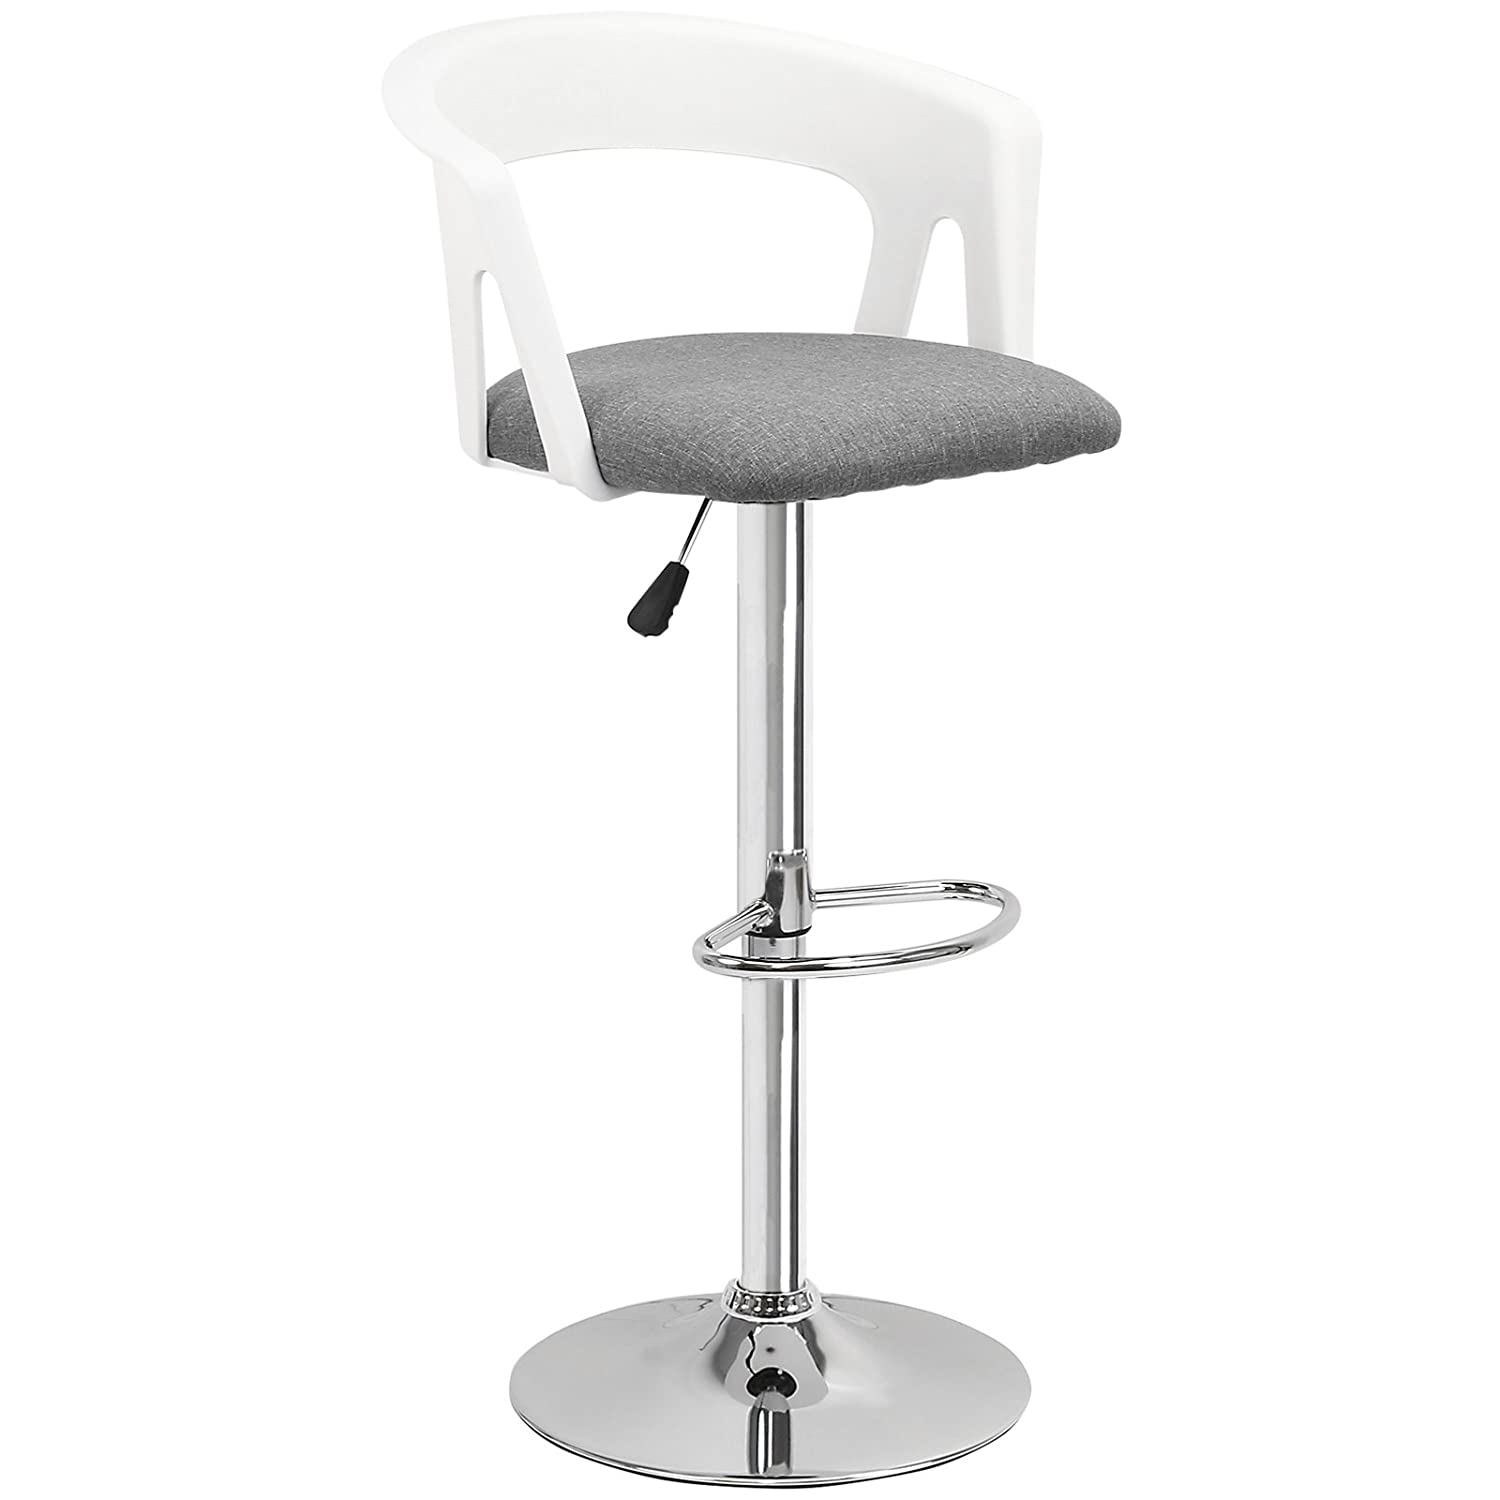 Hartleys Tall Stool With Backrest - Chrome Base/White Seat/Grey Cushion